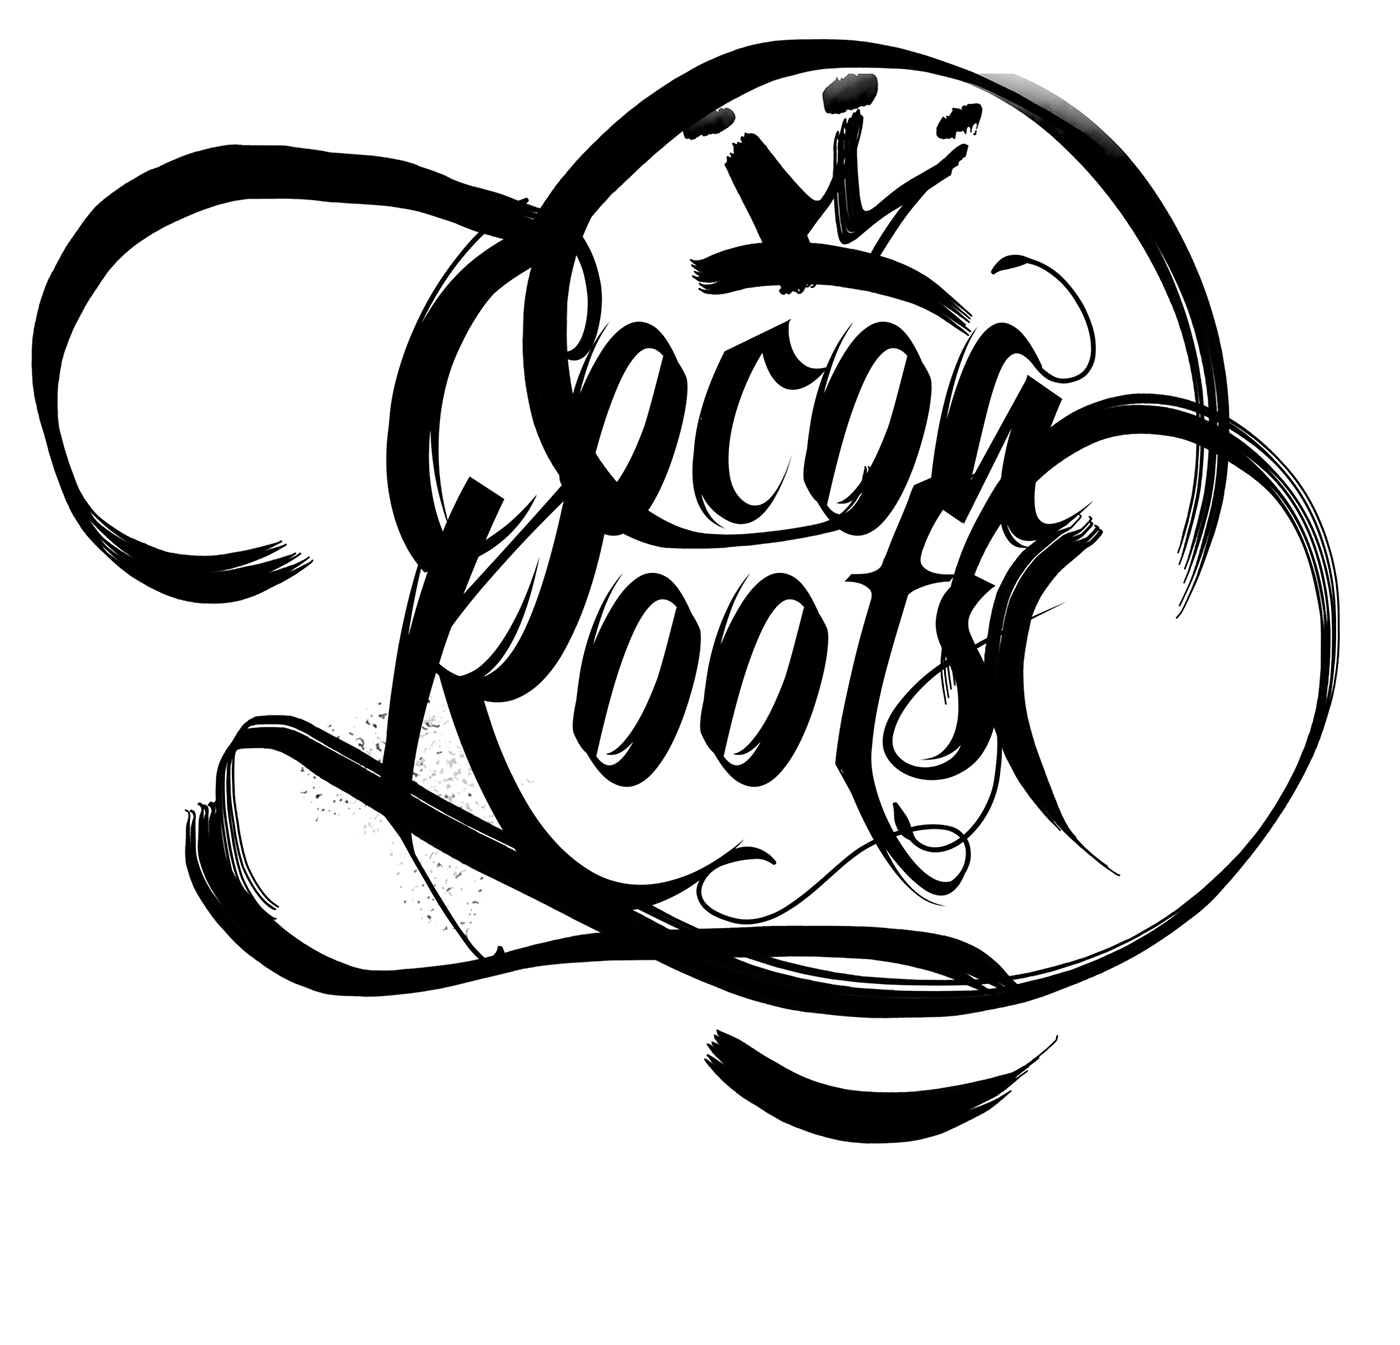 Cocoa Roots, album covers